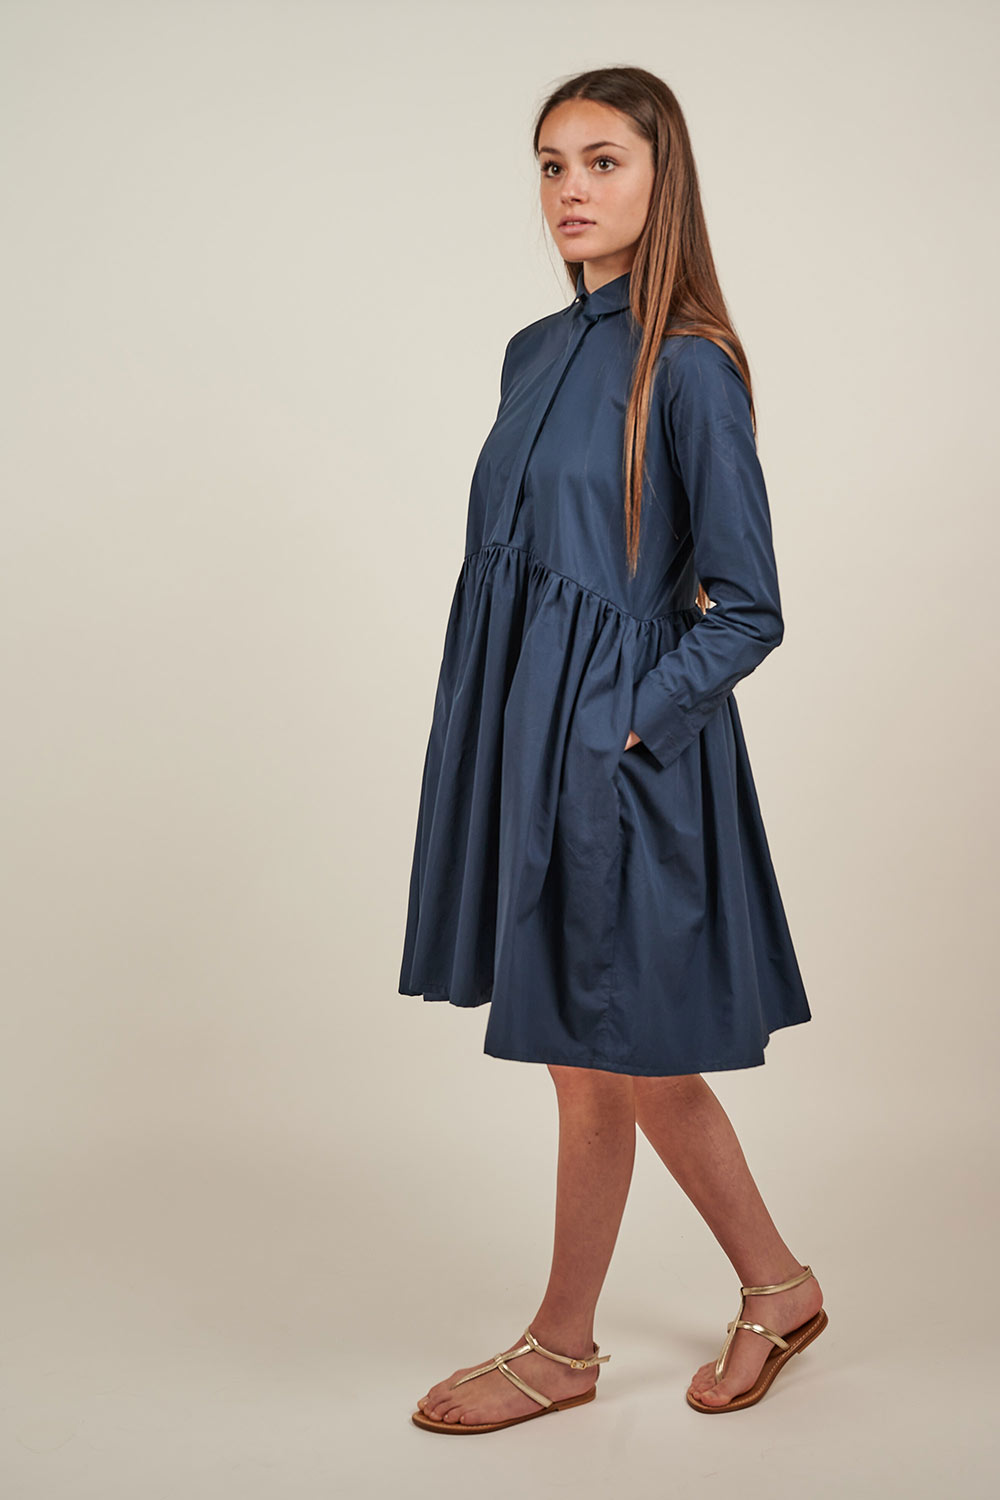 Blue Bon Chic Dress